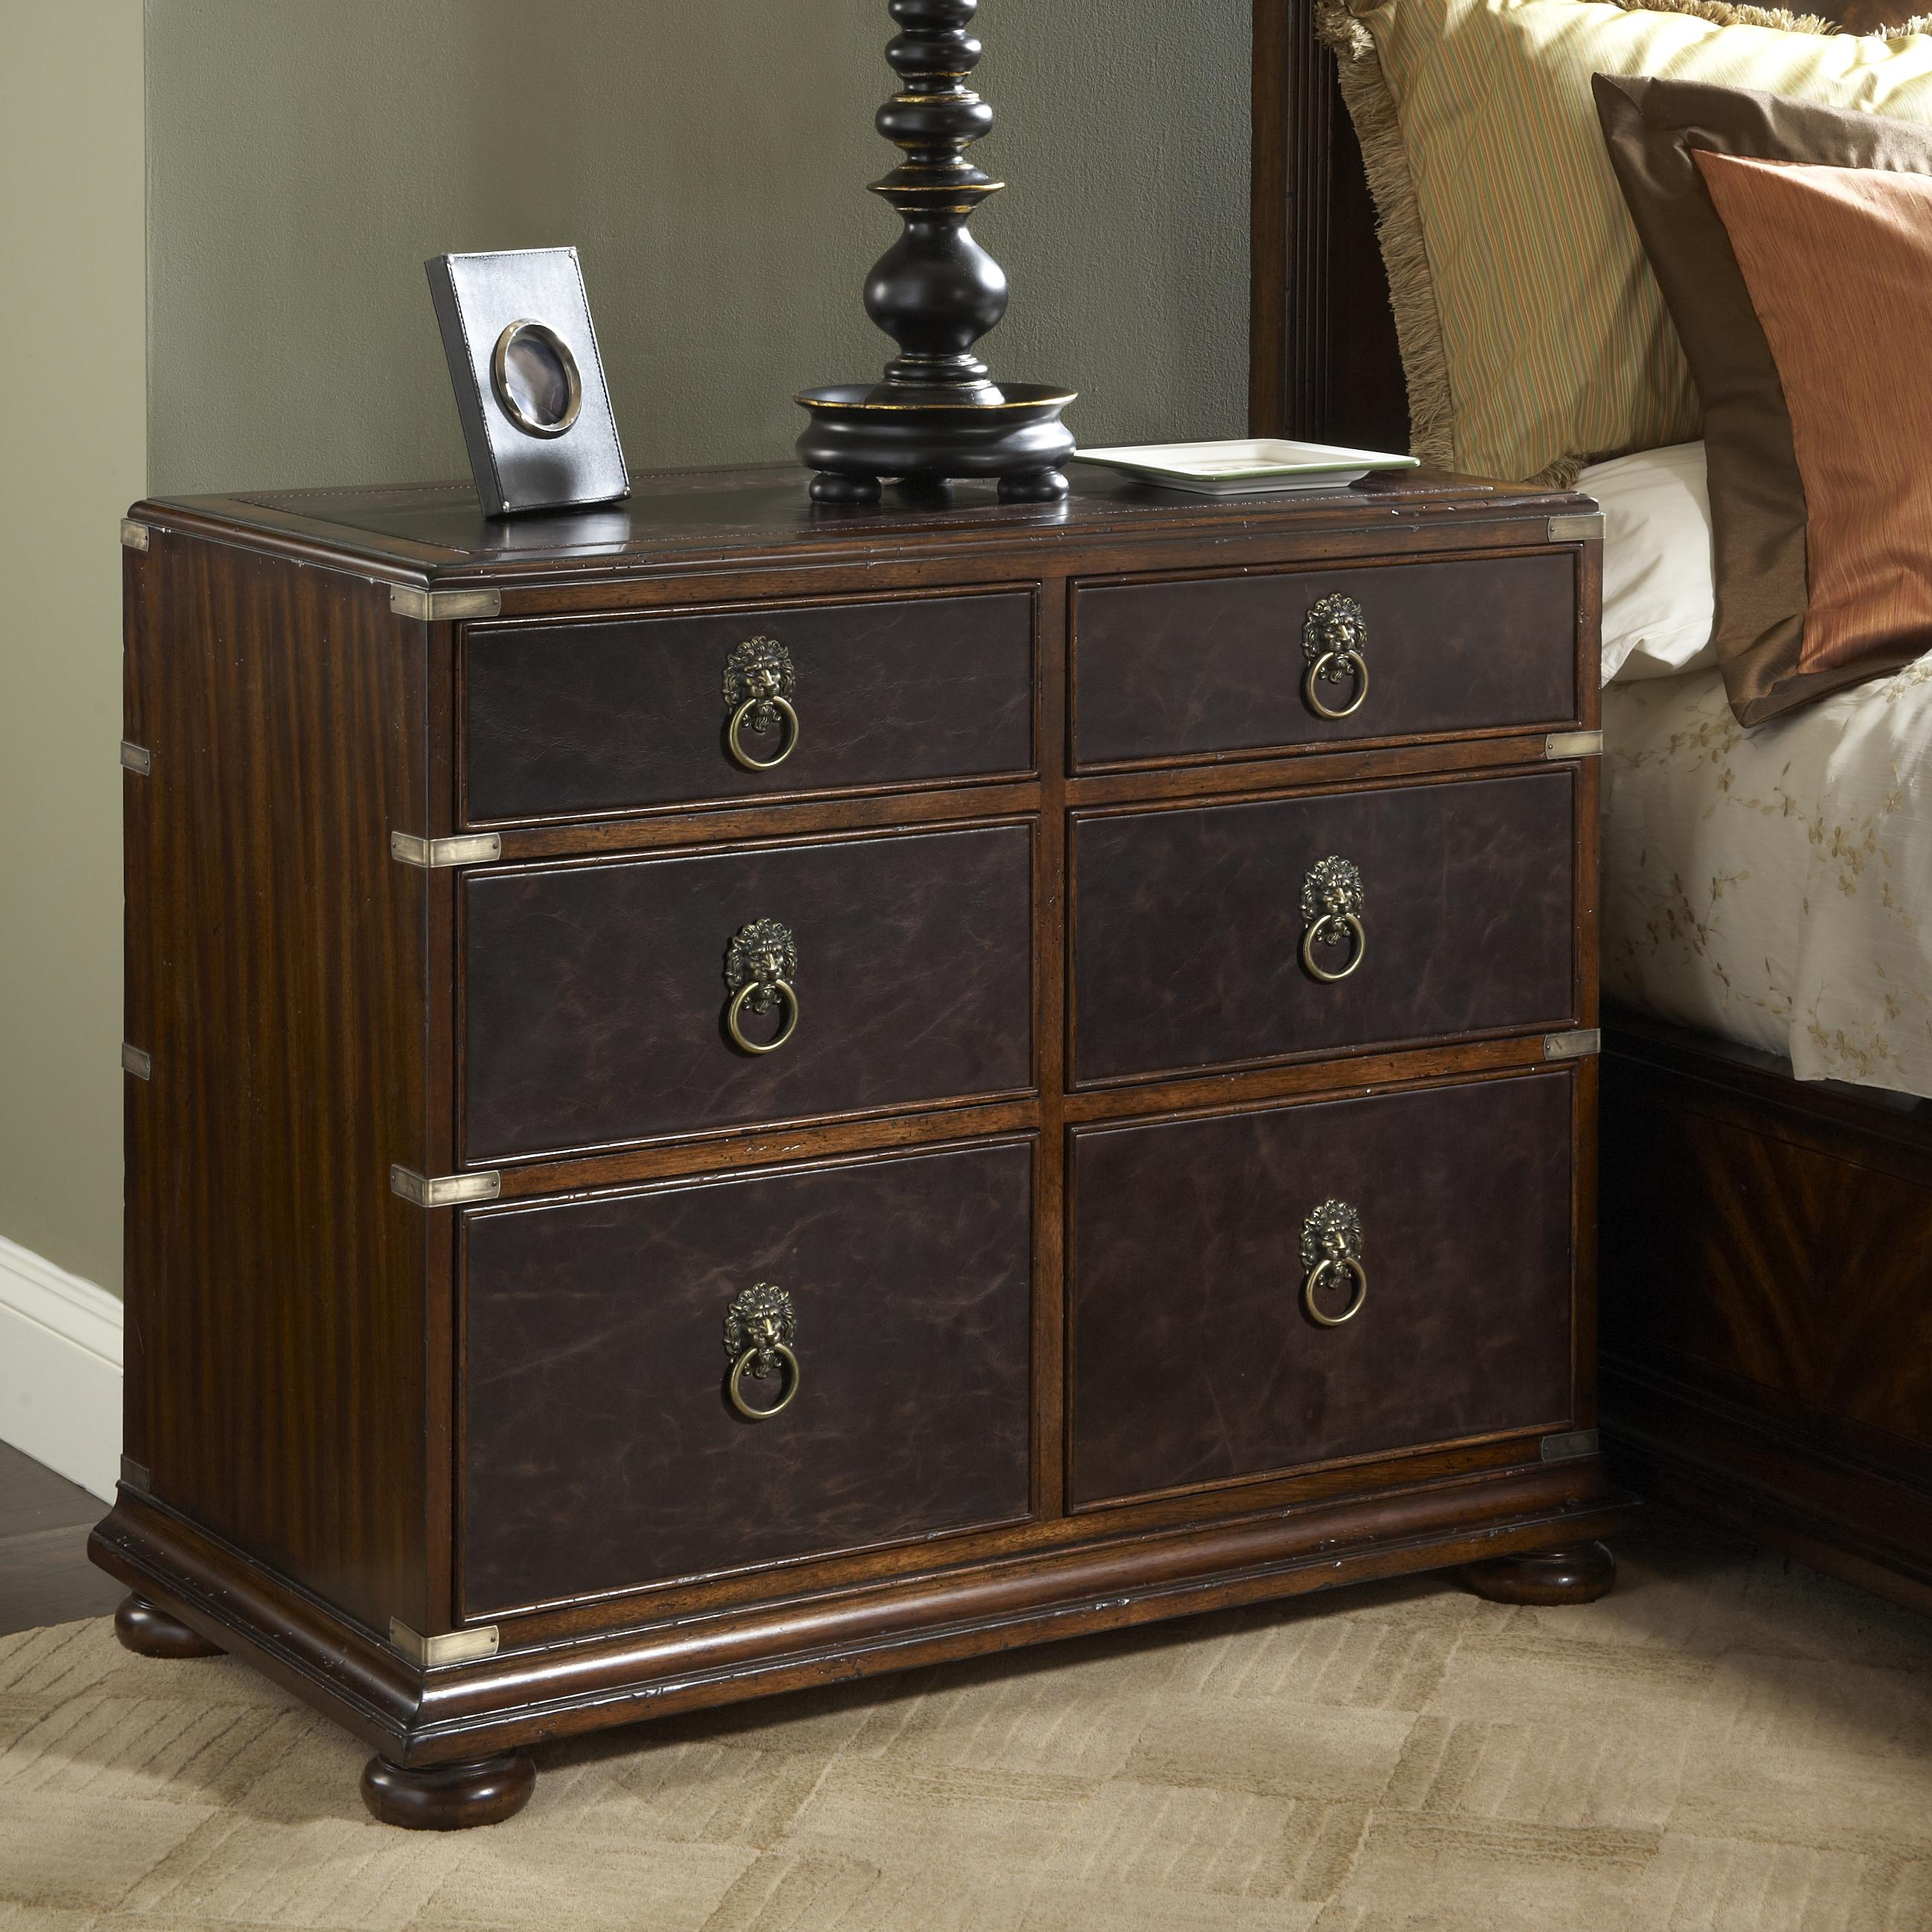 bedsid chest drawers mahogany inlaid antique of atlas pair antiques bedside